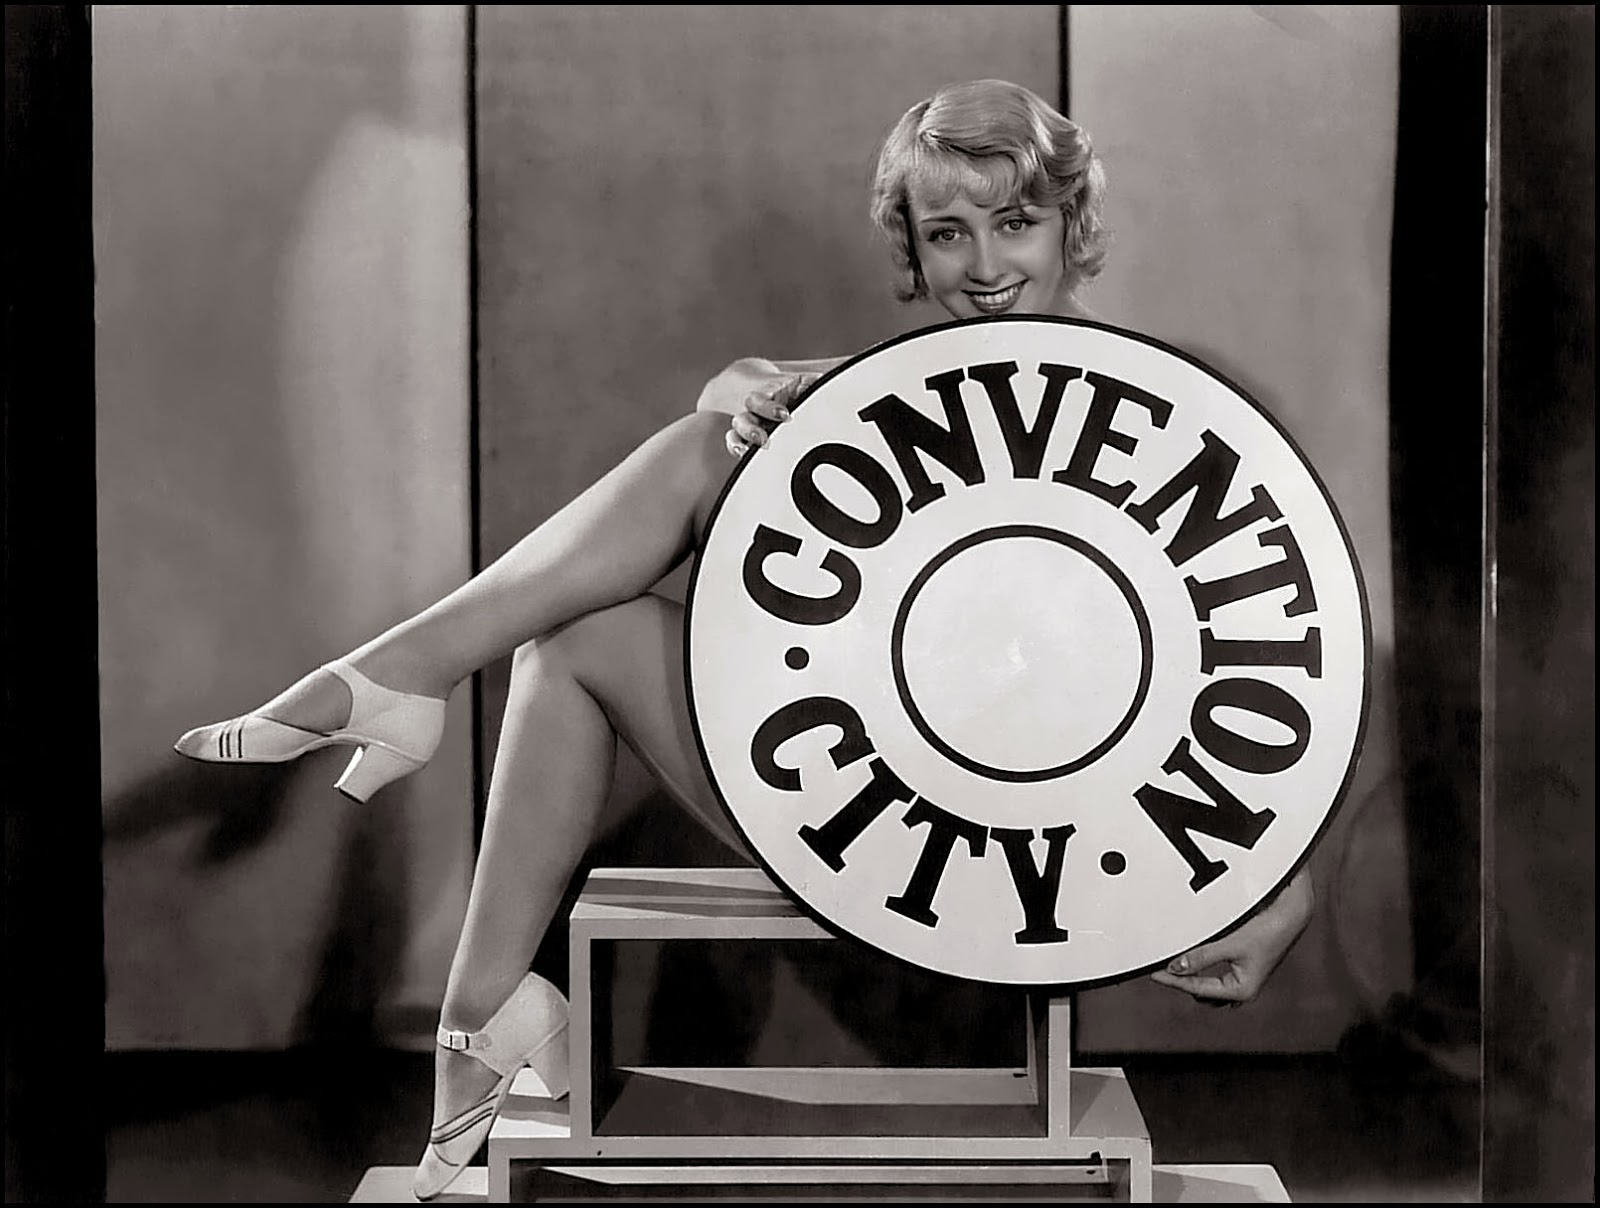 Convention City Joan Blondell